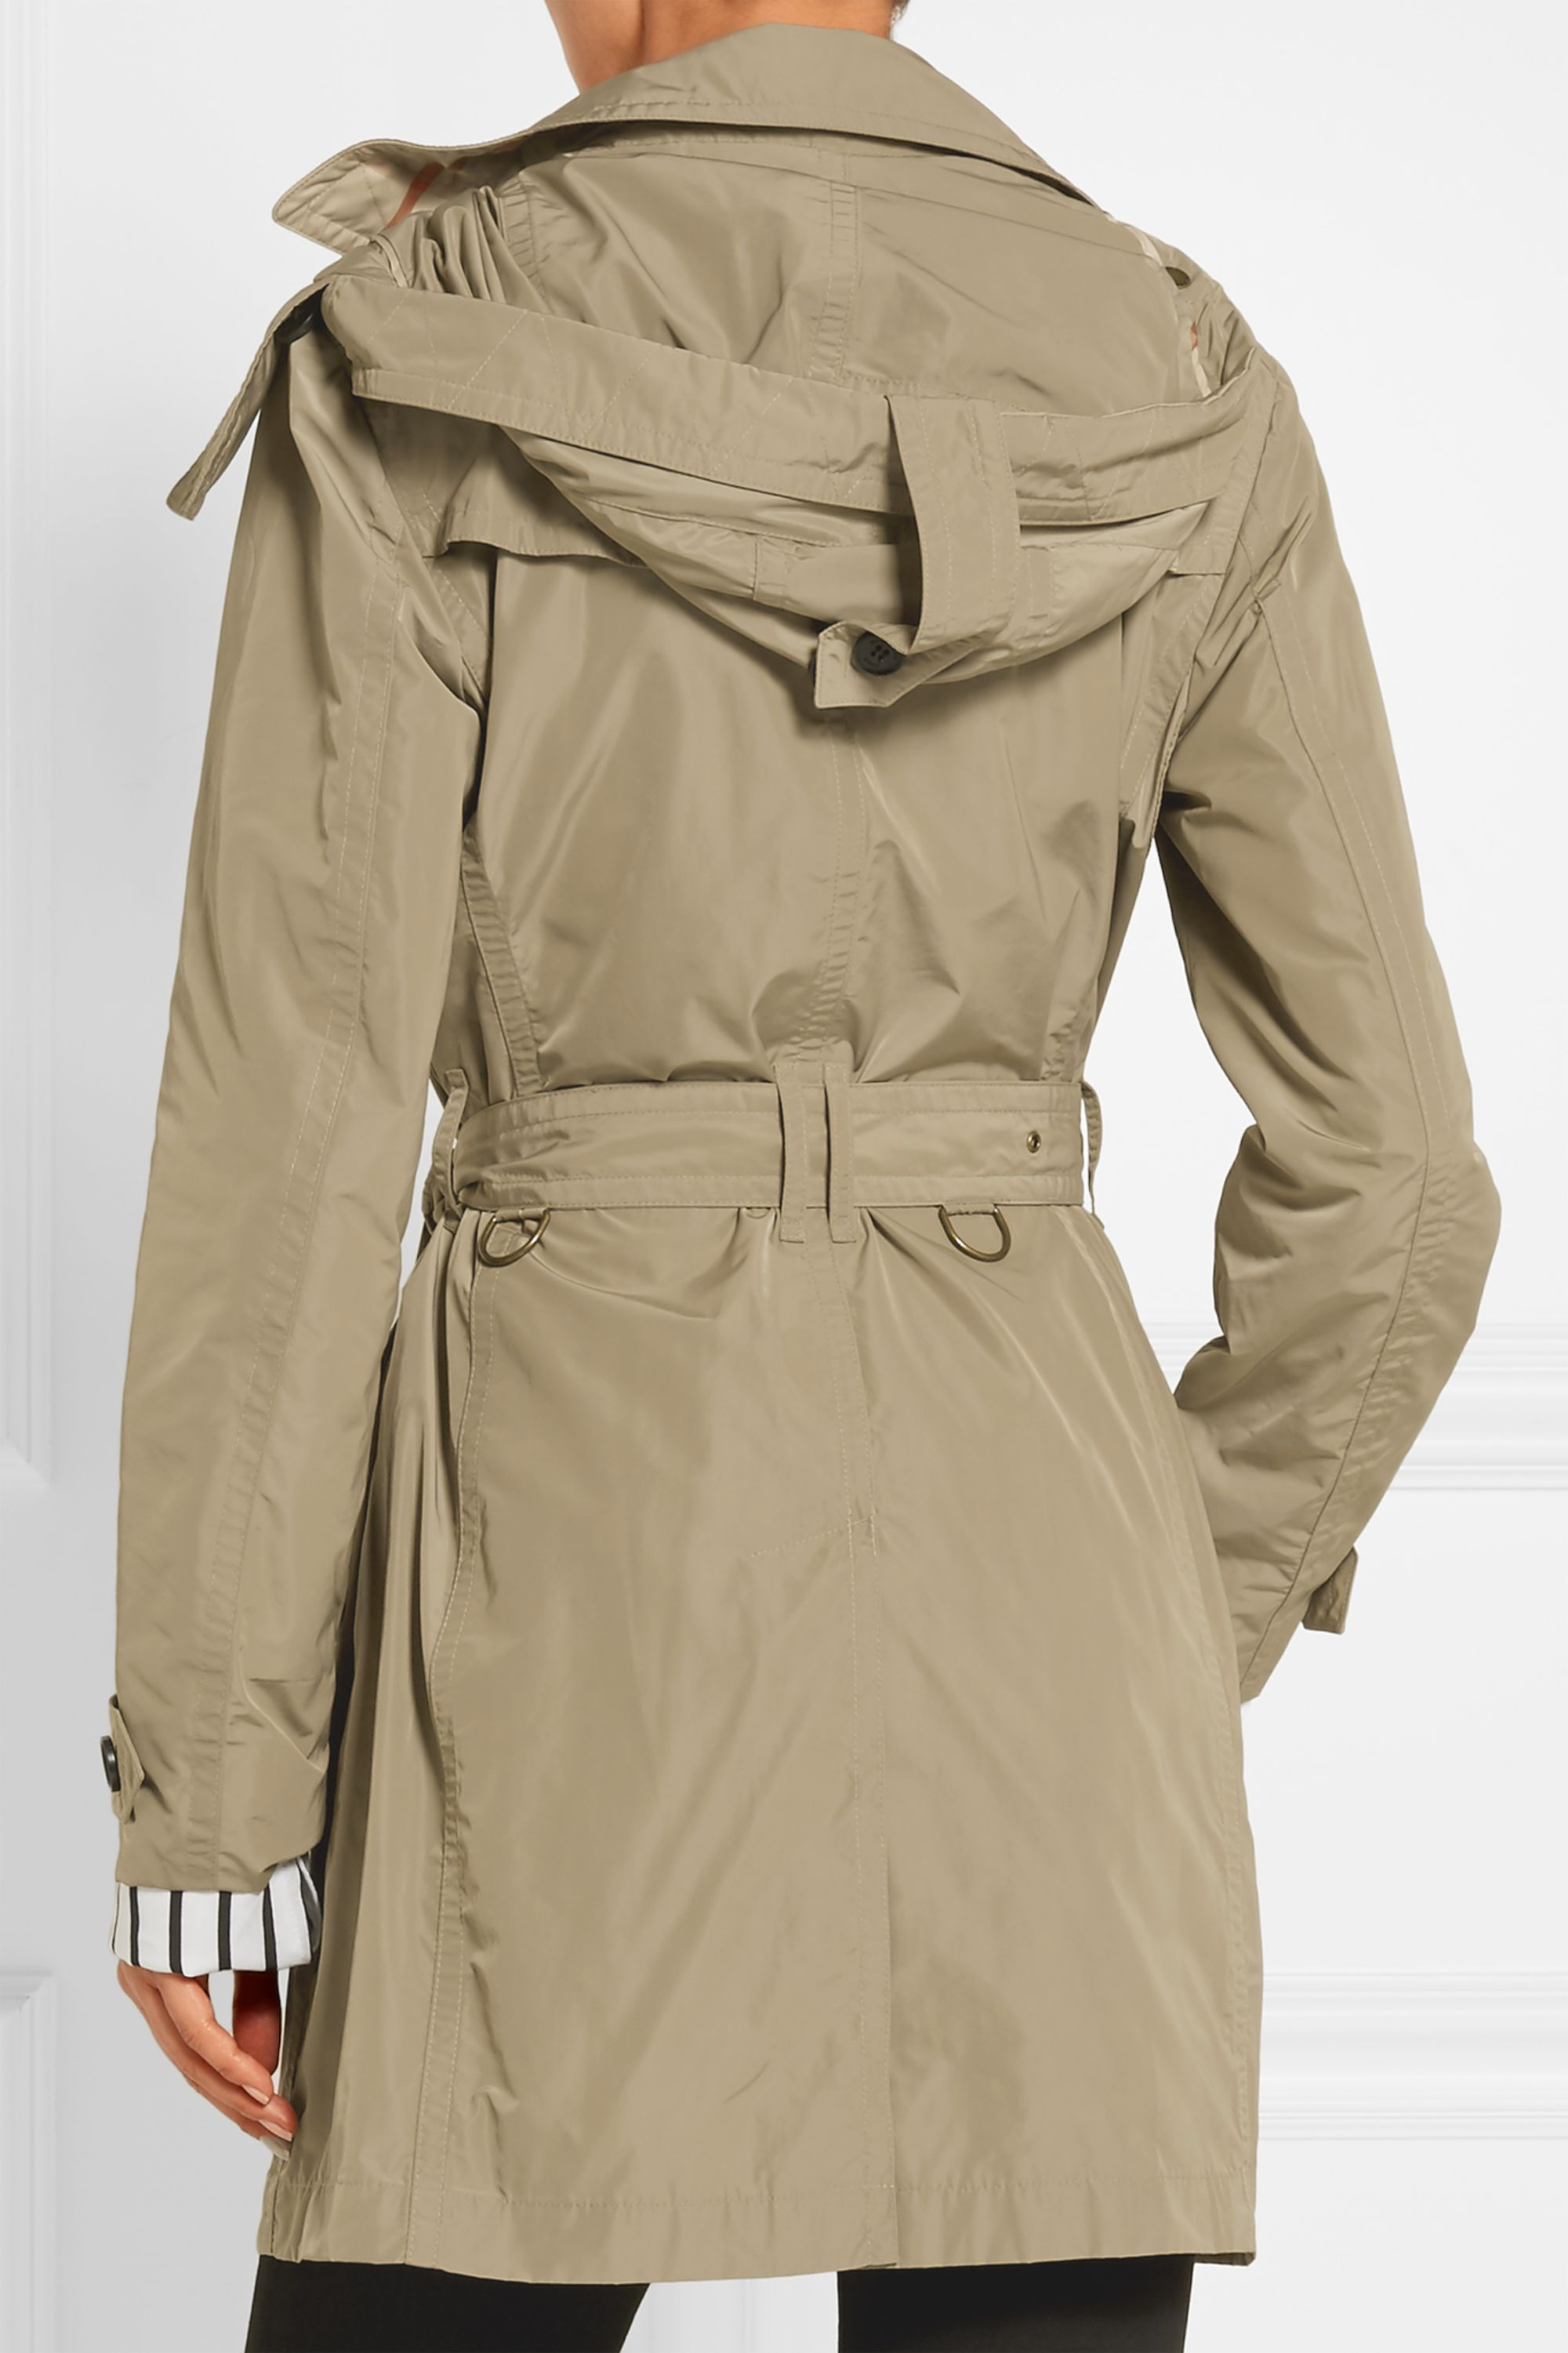 Burberry Balmoral Packaway hooded shell trench coat